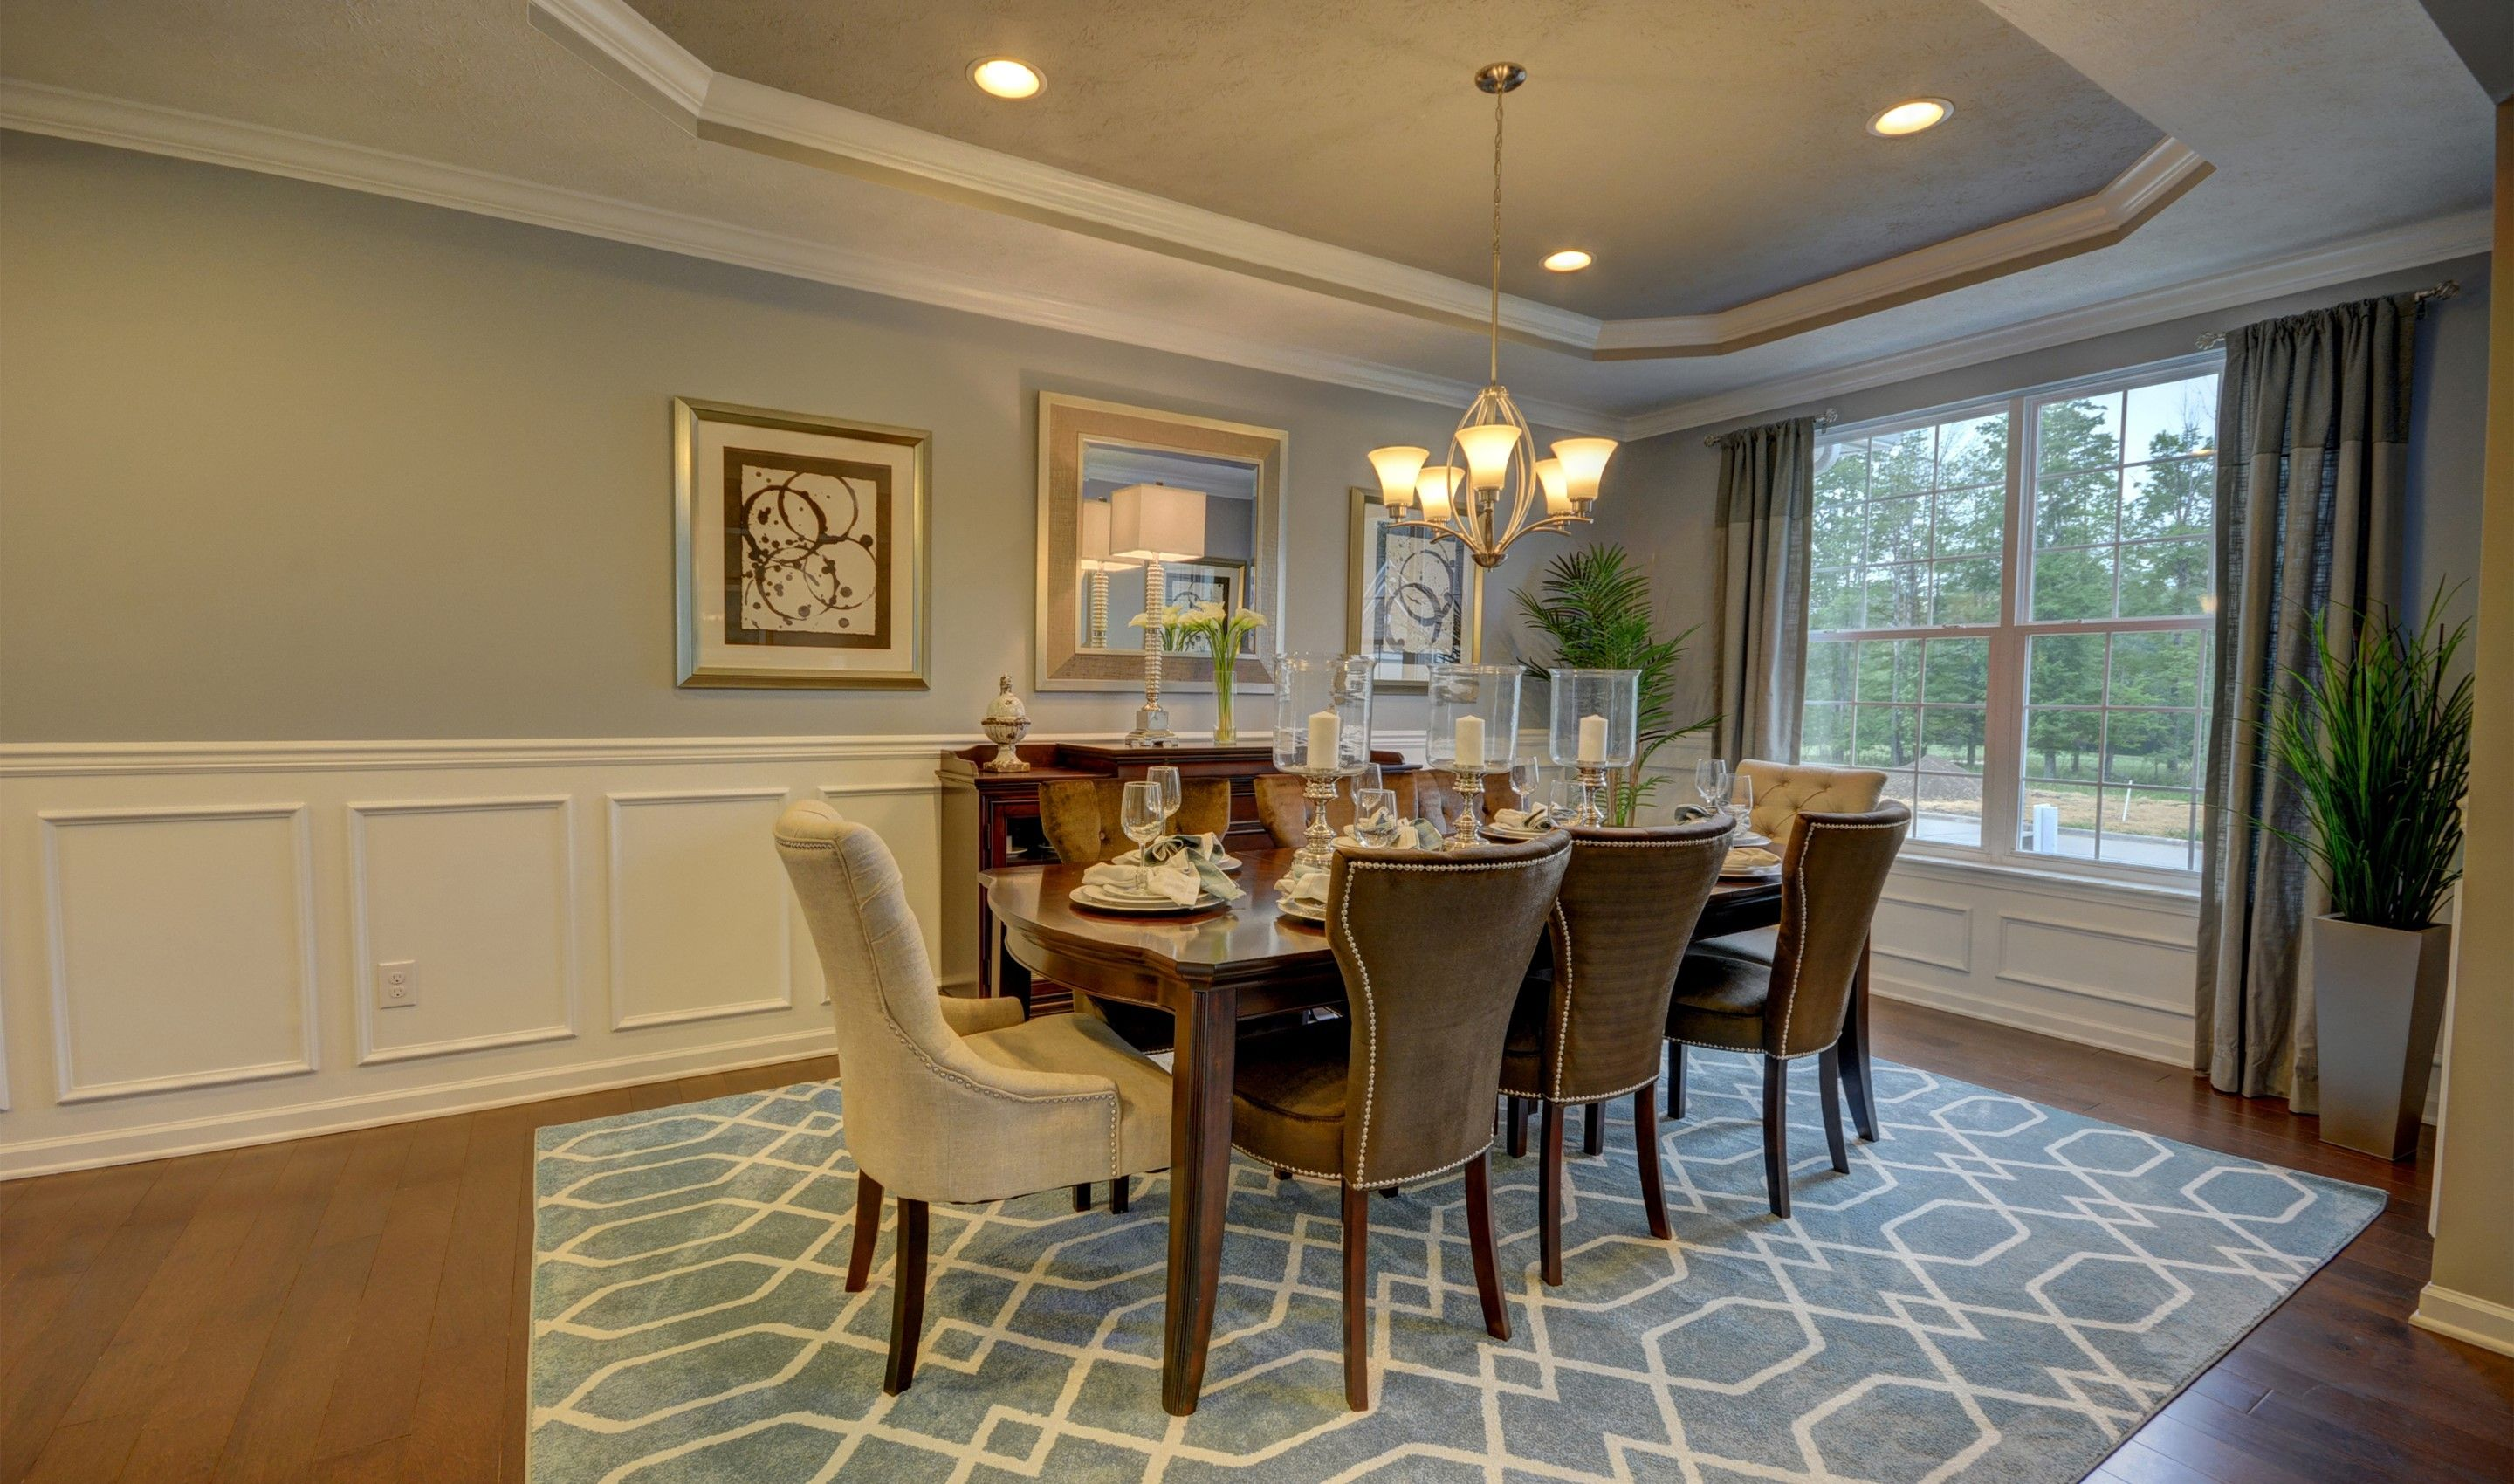 Single Family for Active at Dover 1301 Merlot Drive Bel Air, Maryland 21015 United States